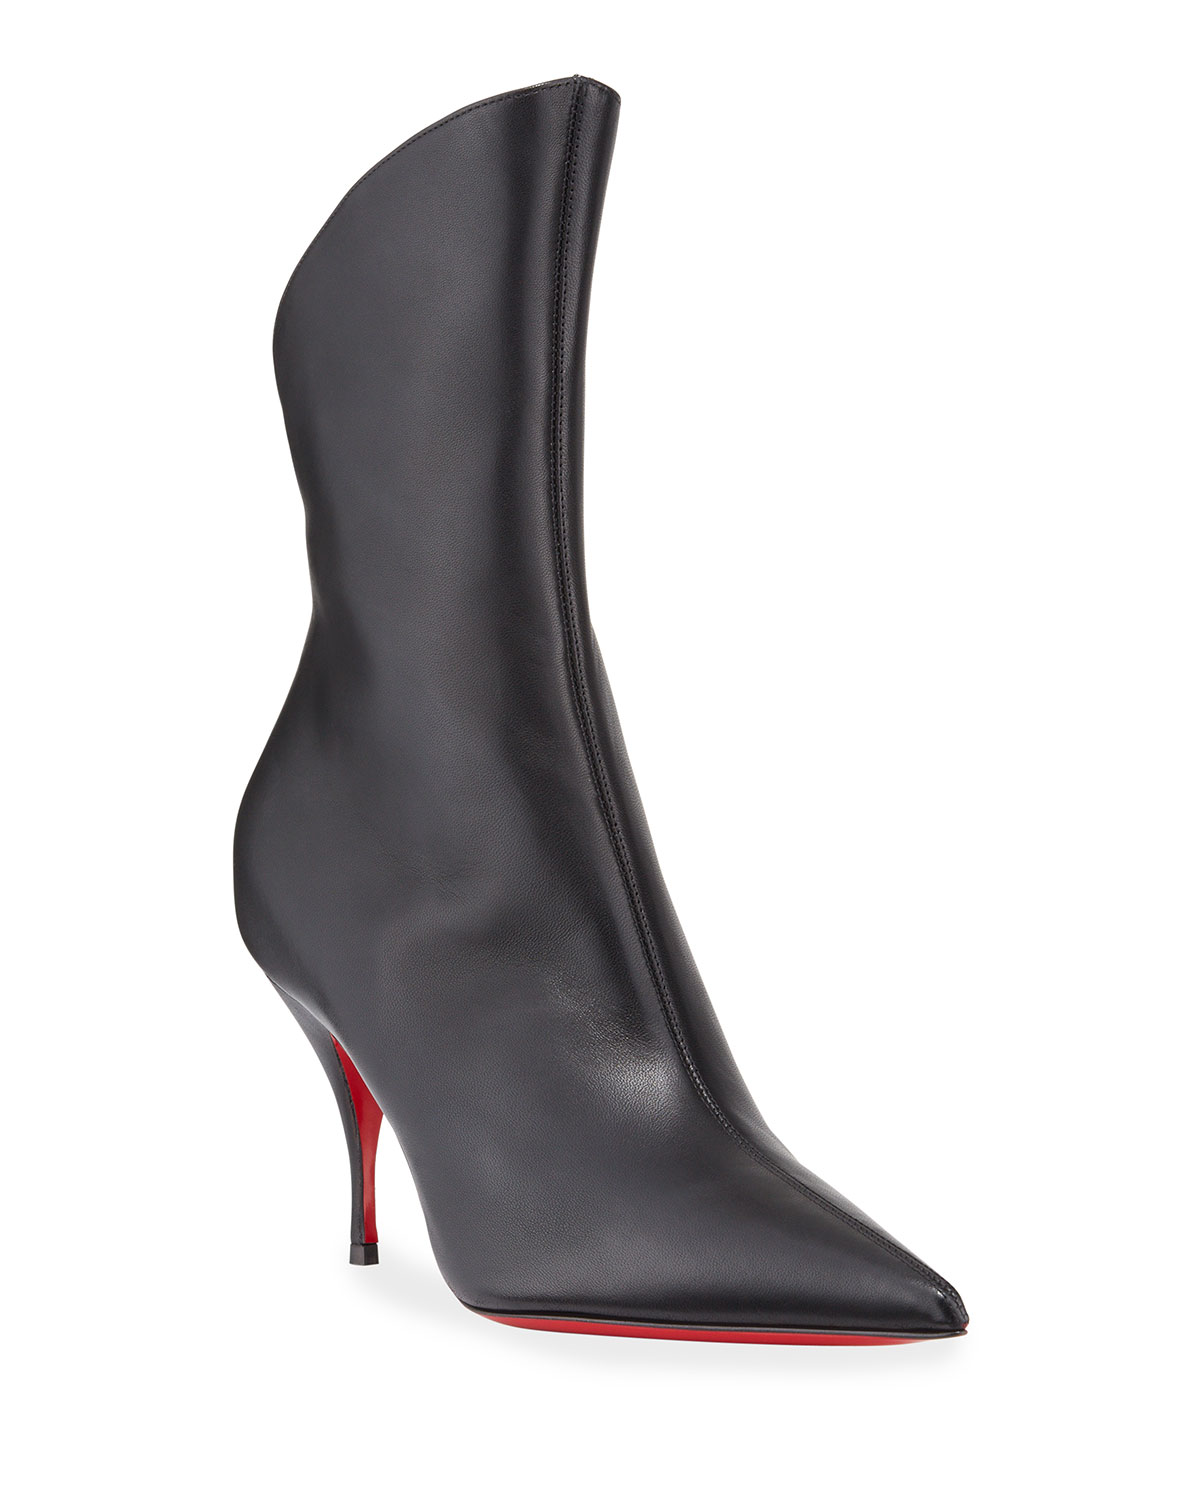 79dd7484d7b Clare Pointed-Toe Red Sole Booties